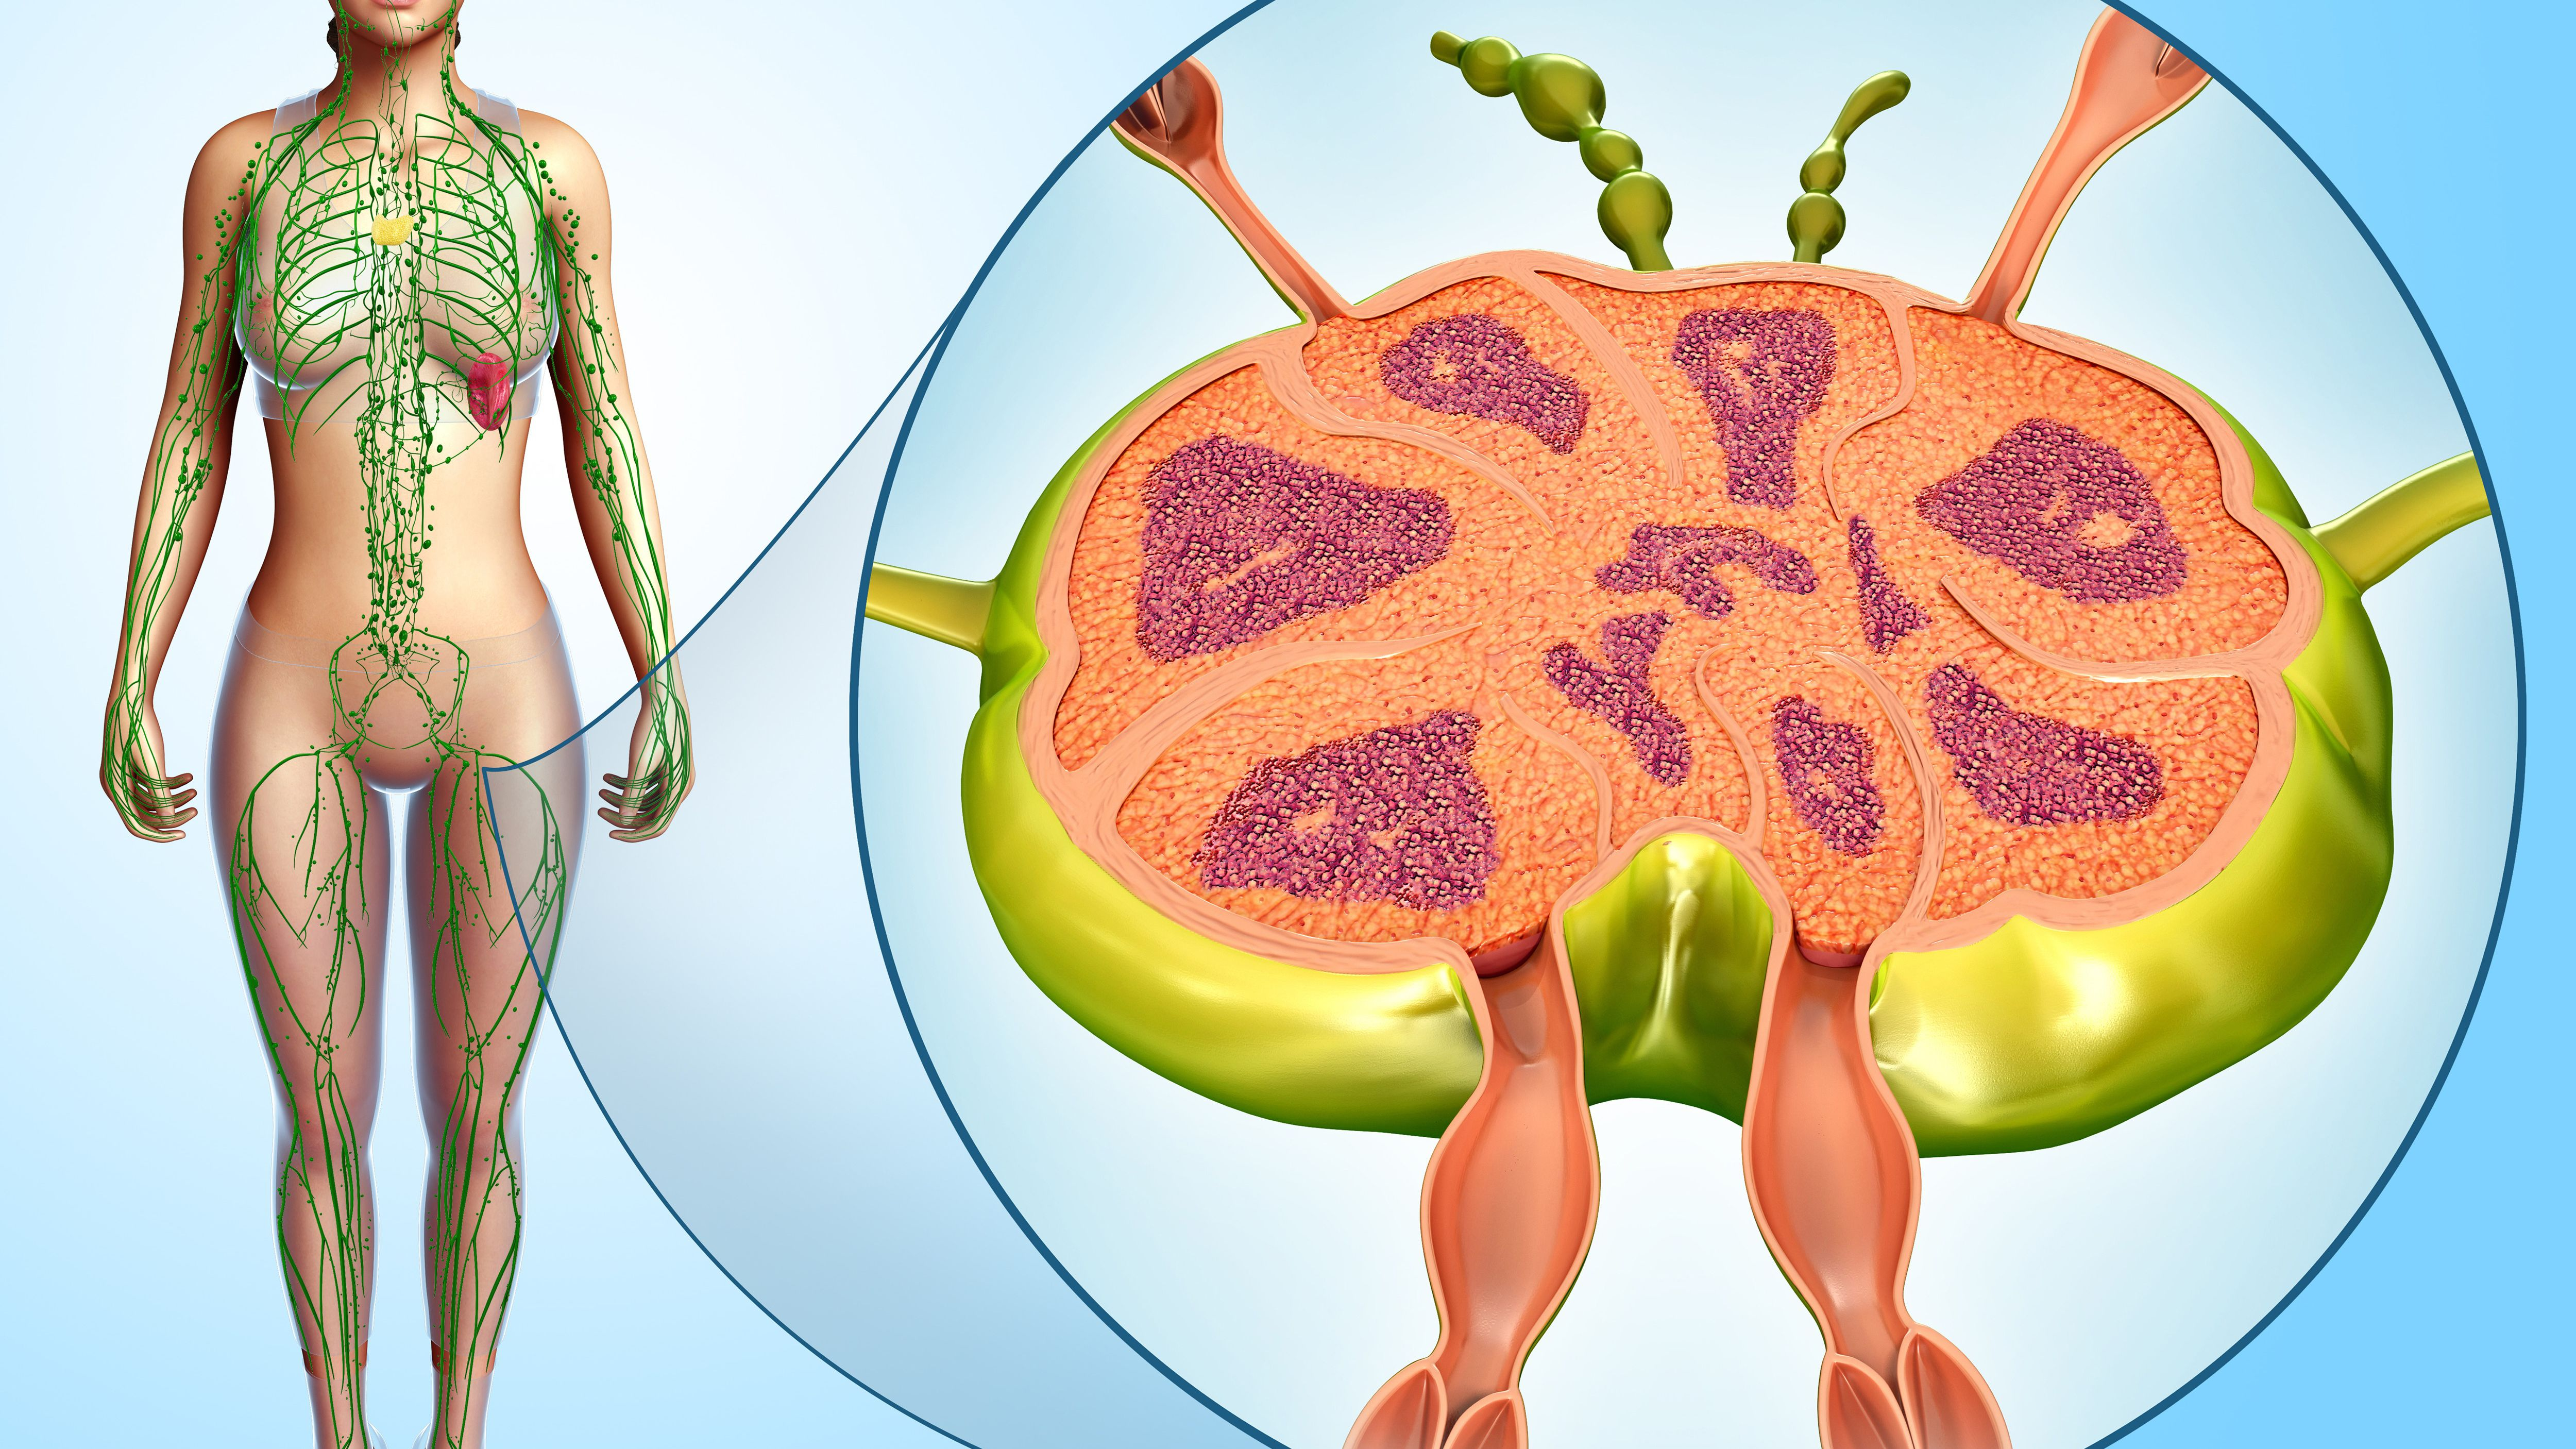 Do Enlarged Lymph Nodes Offer Clues About Cancer?